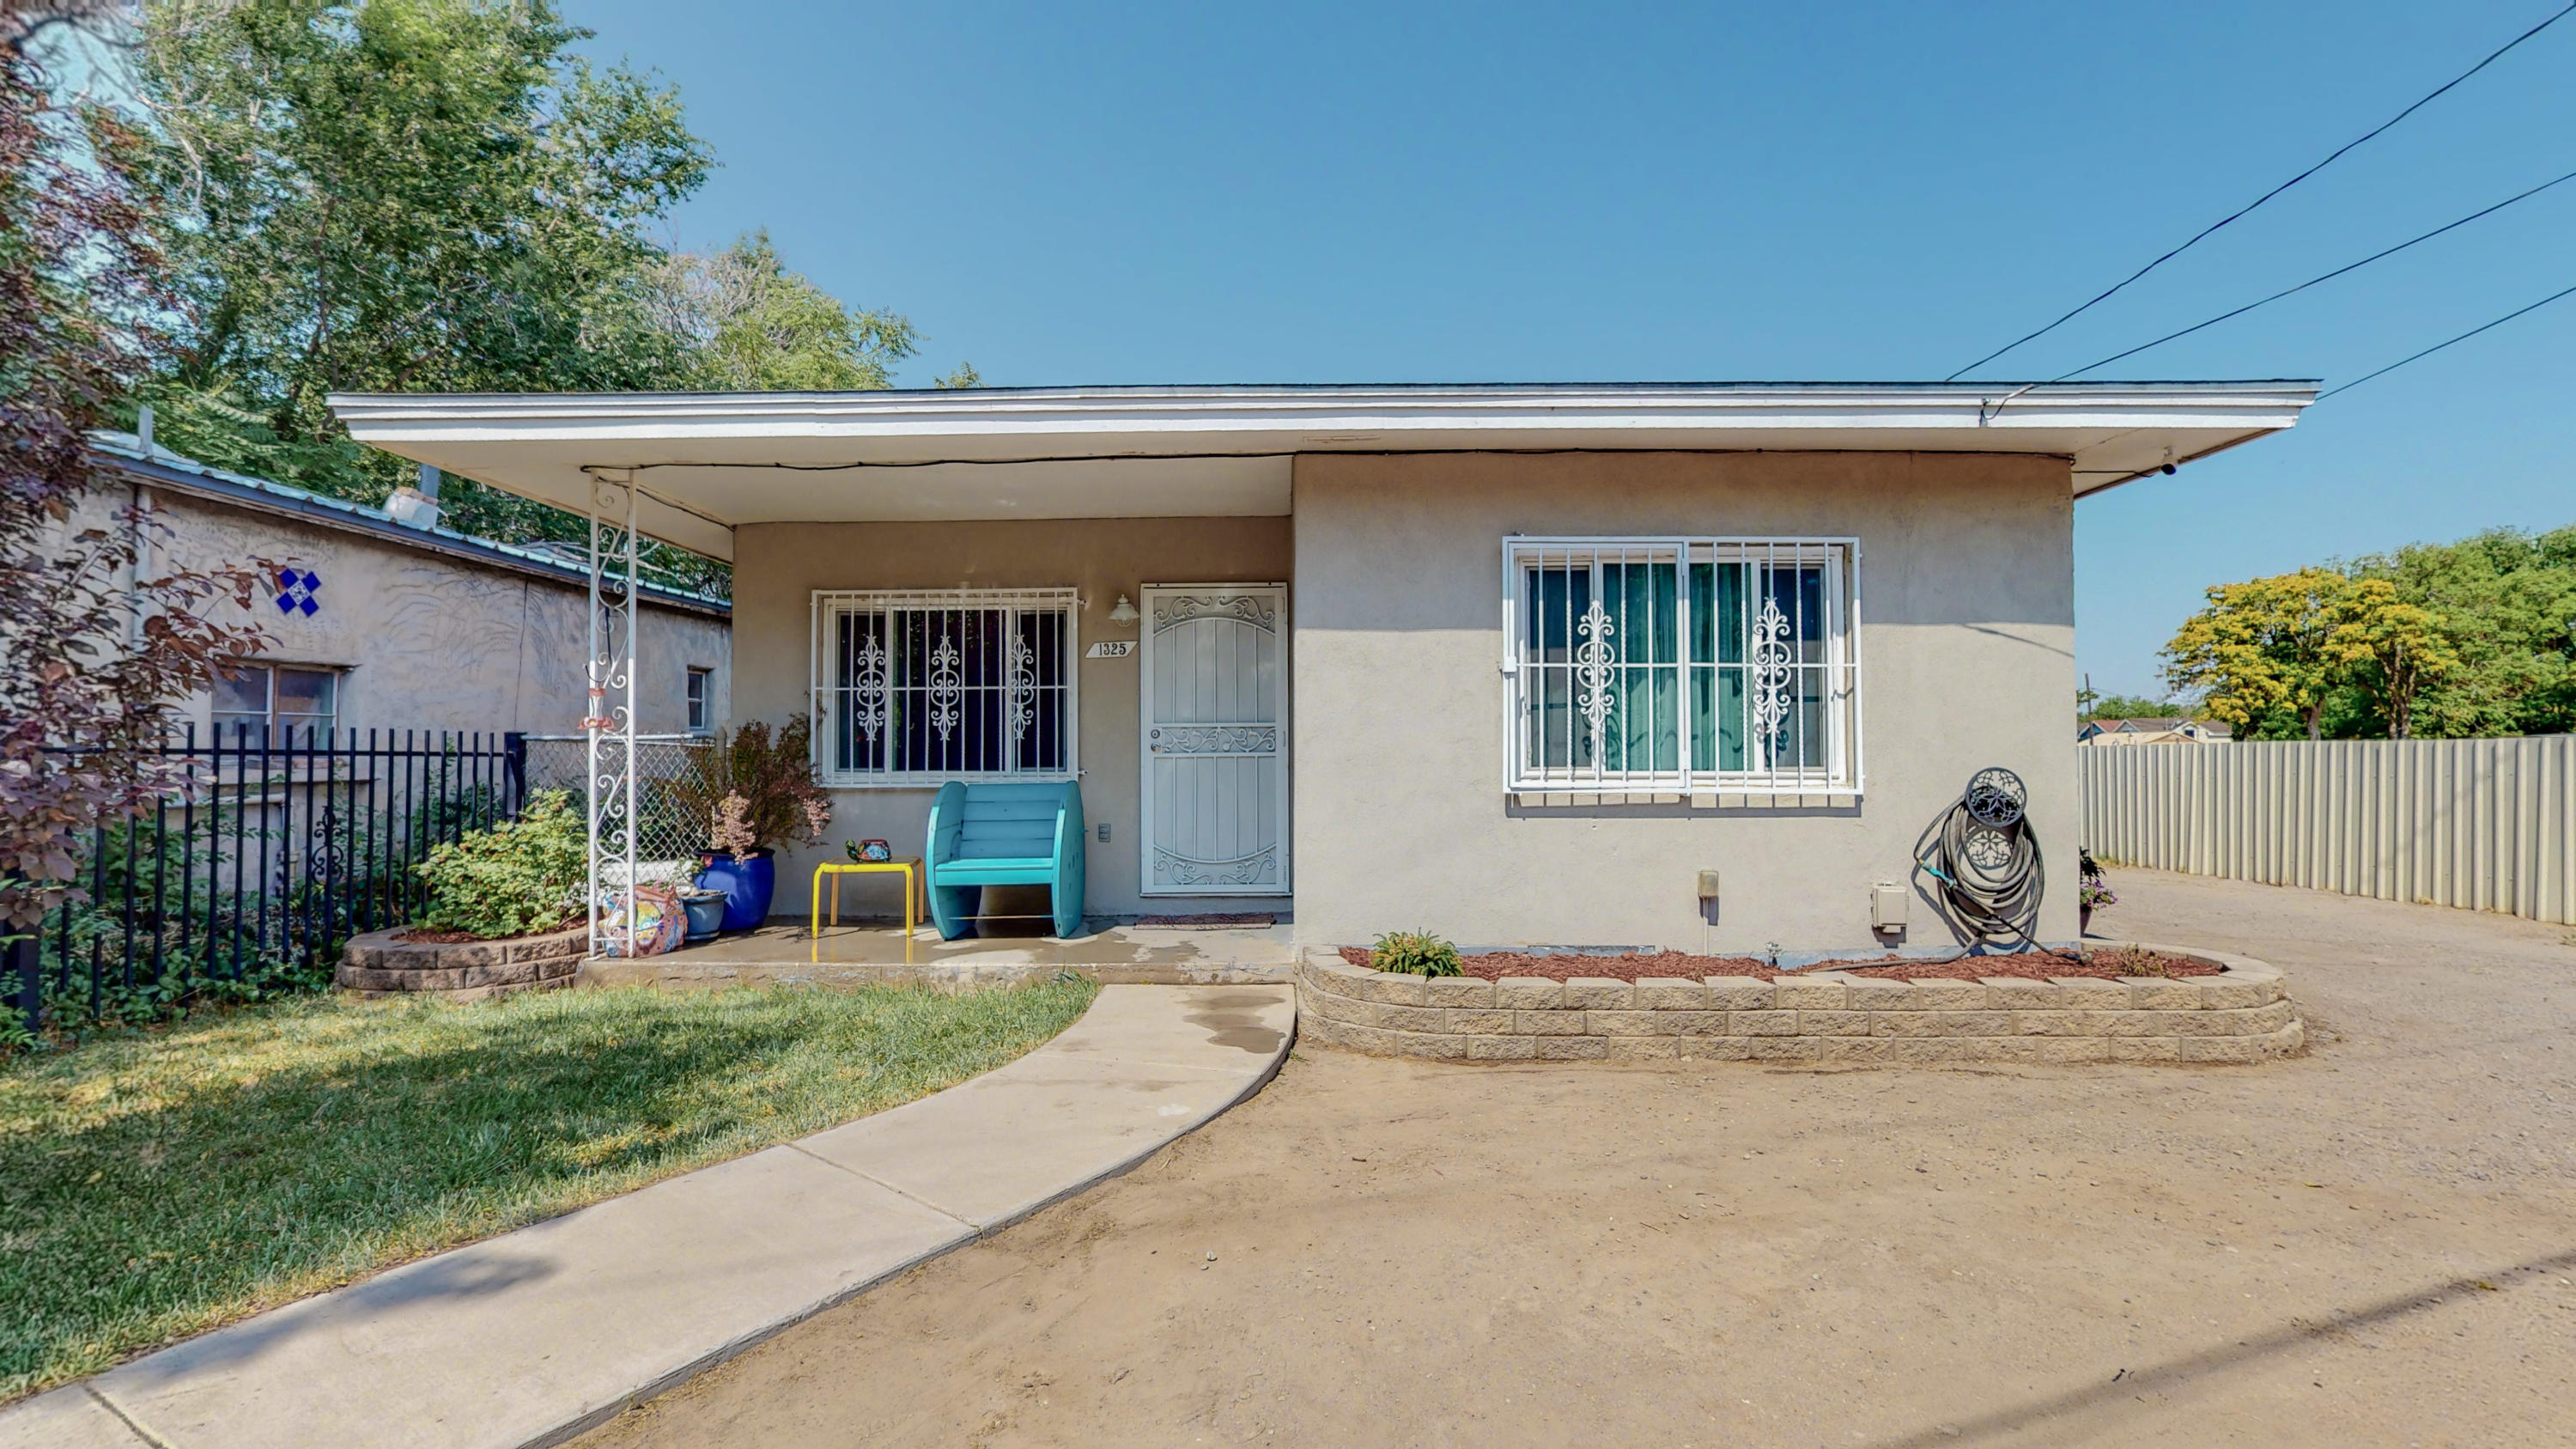 This property has been updated with a beautiful kitchen, entire home has matching tile, 2 tankless water heaters installed in 2019, 2018 new electrical panel, 2016 new AC refrigerated units.  Back garage converted to a insulate workshop with electricity and can be easily turned in to a casita/in law quarters.  Front gate is electric for easy access.